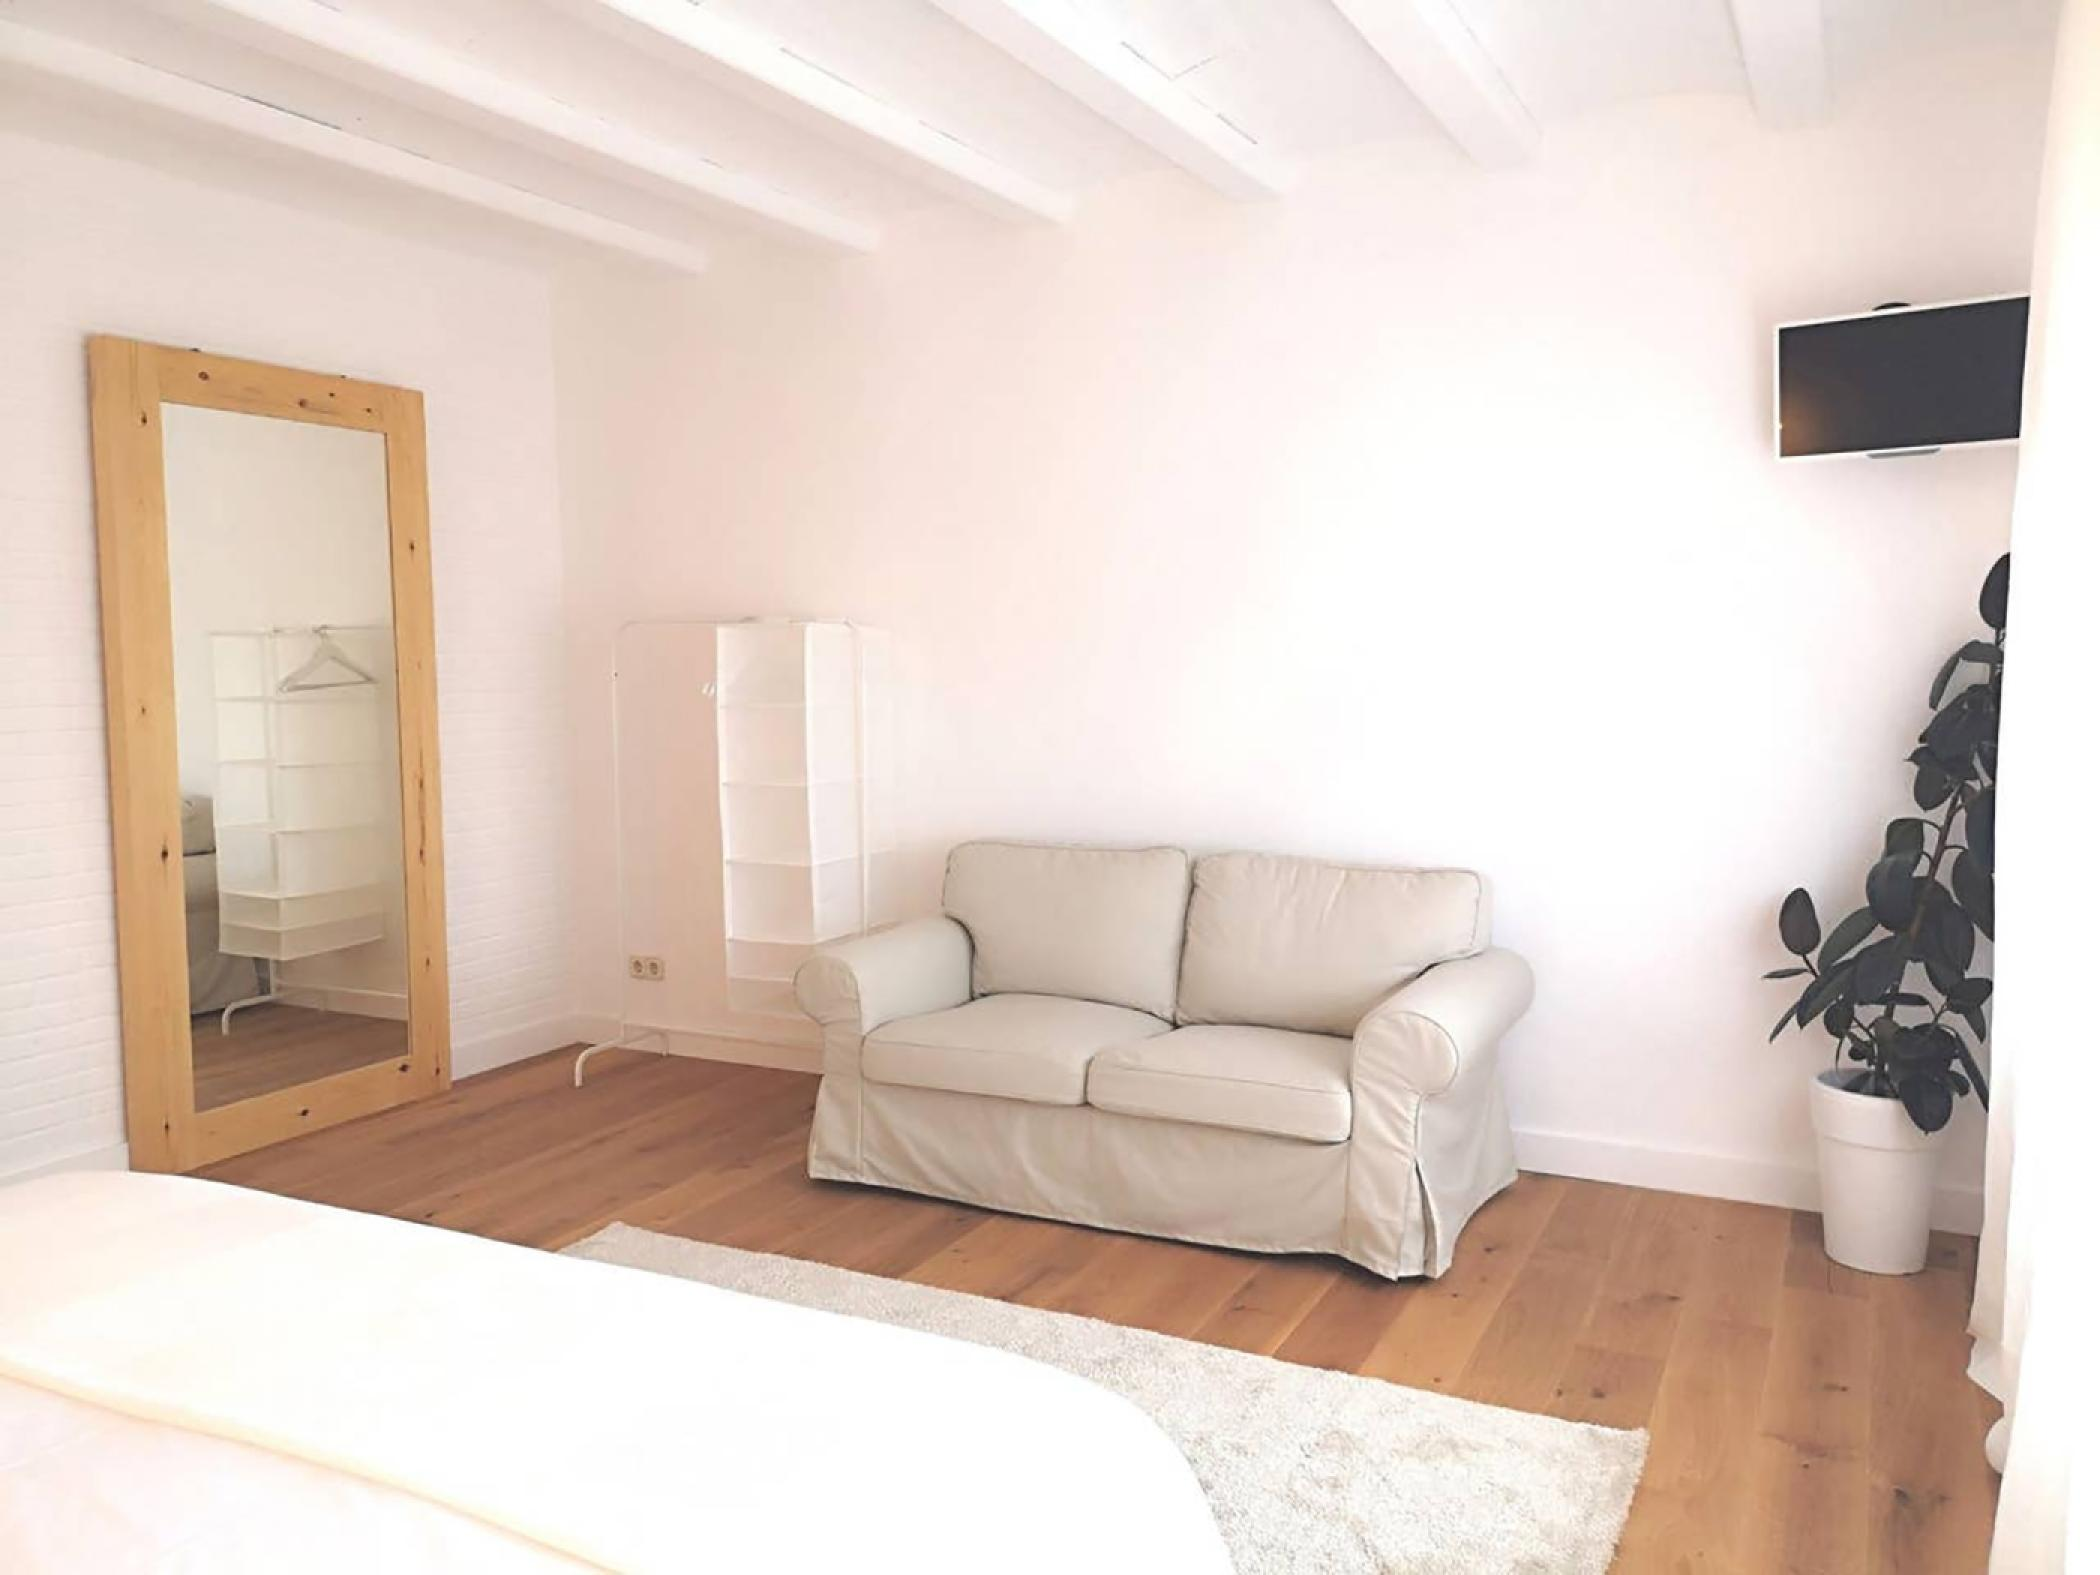 Room with double bed - Rent apartment in Sant Jordi Desvalls, Diana, Girona